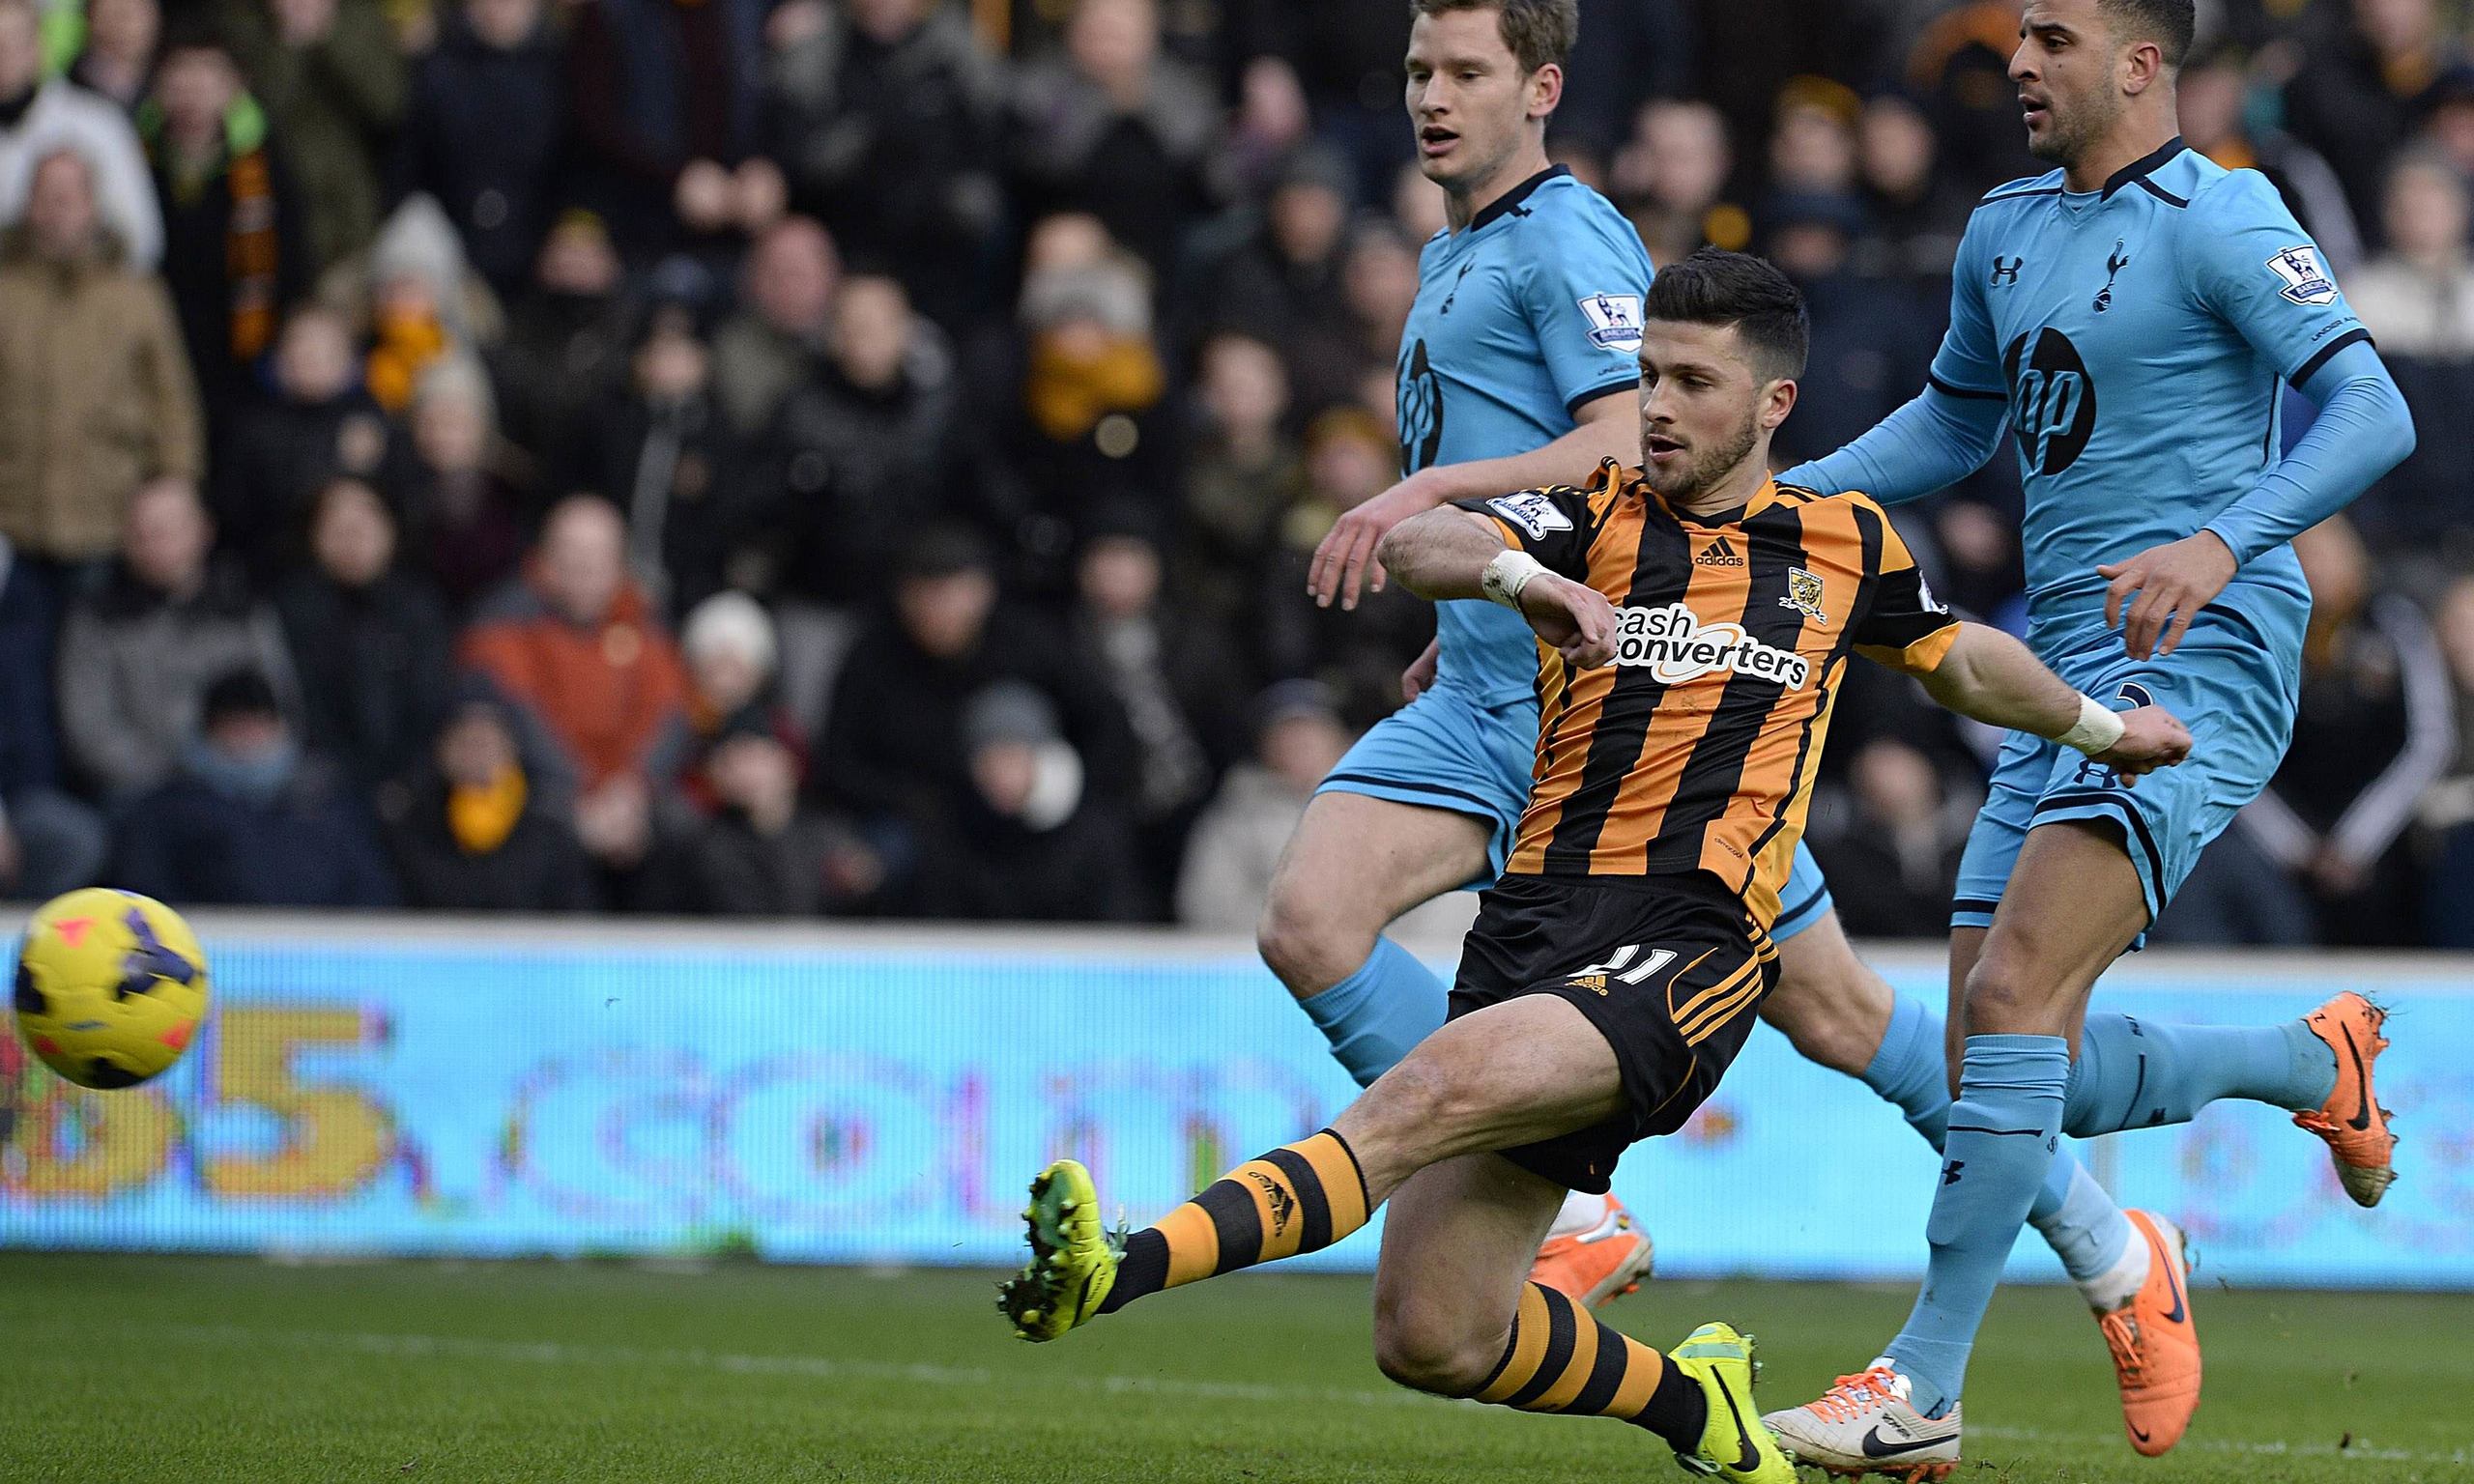 Hull's Shane Long, centre, scores against Tottenham Hotspur in the Premier League at the KC Stadium